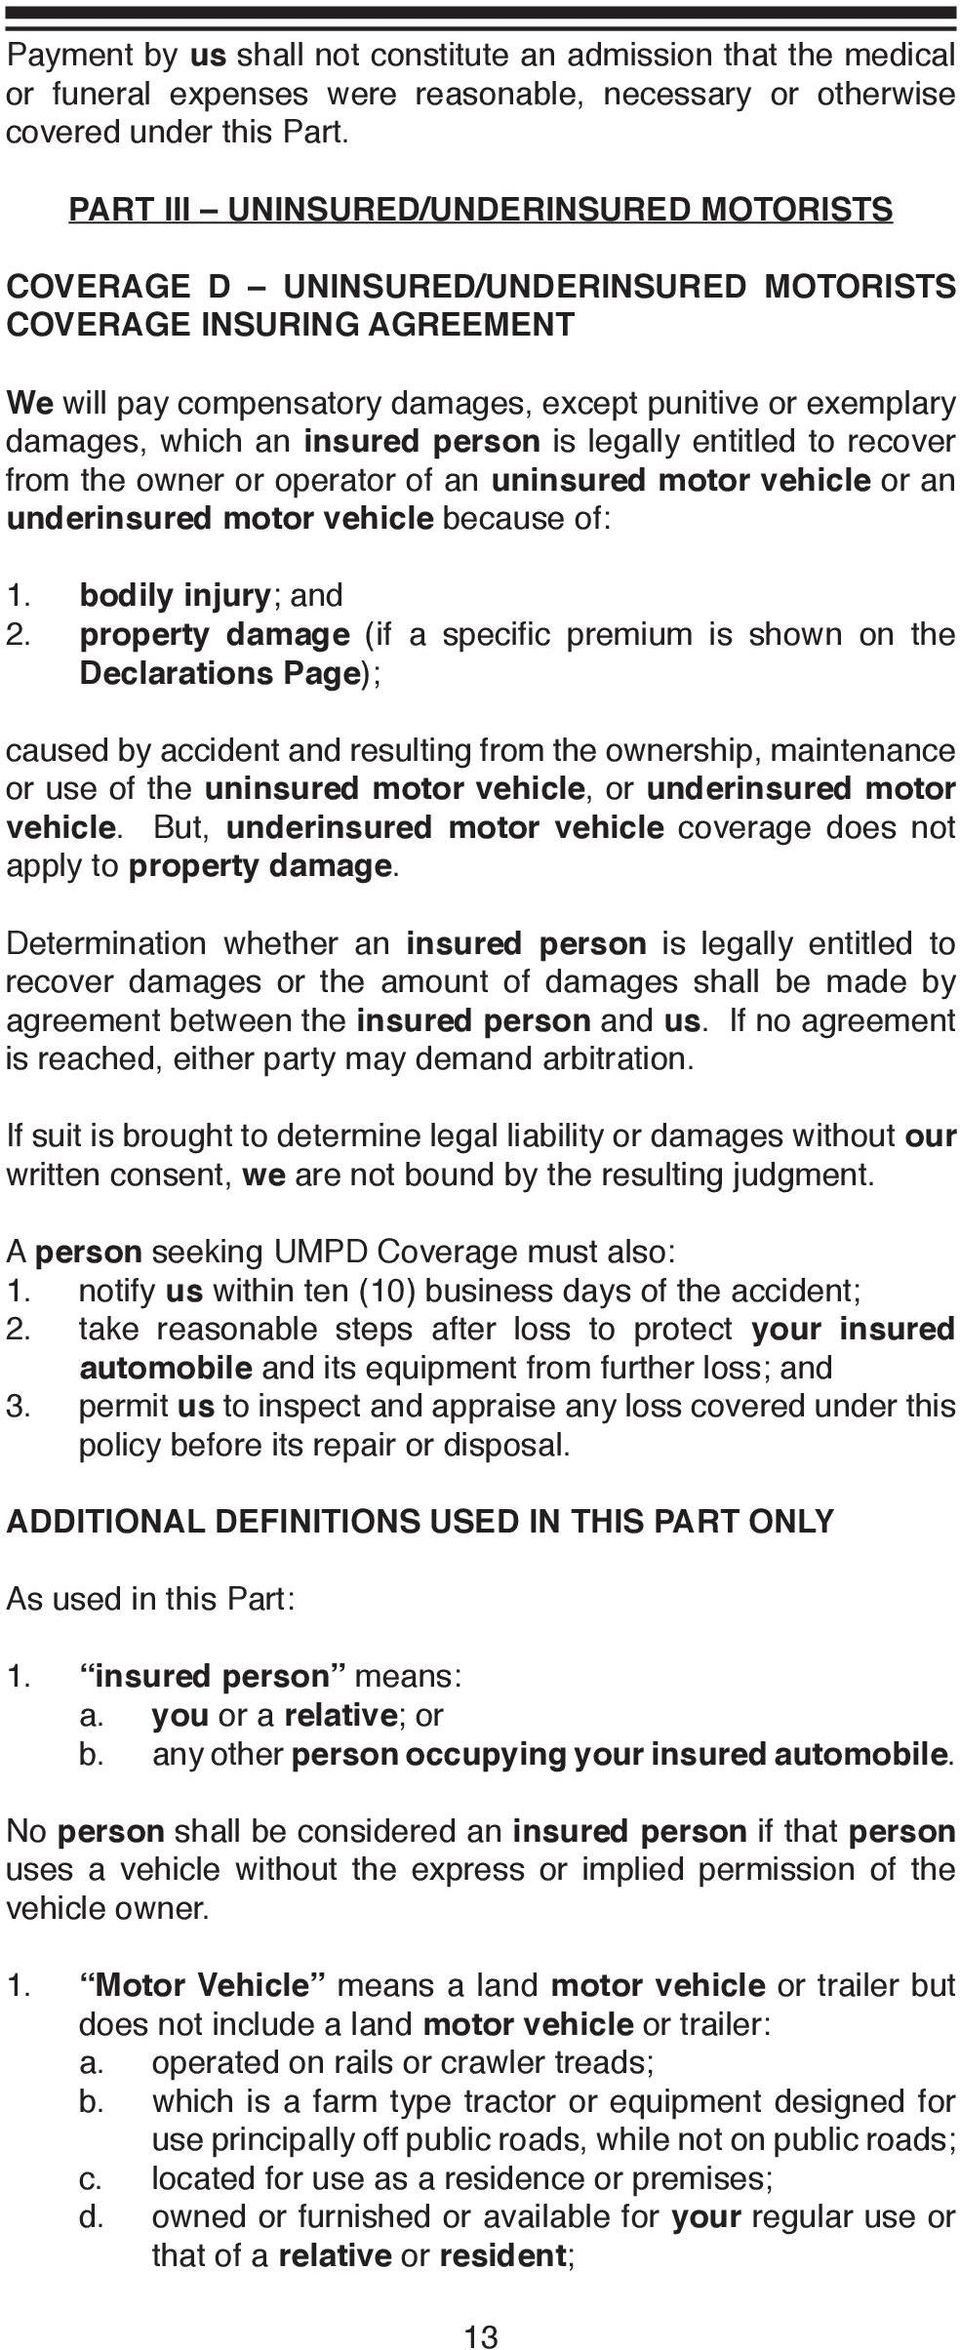 insured person is legally entitled to recover from the owner or operator of an uninsured motor vehicle or an underinsured motor vehicle because of: 1. bodily injury; and 2.